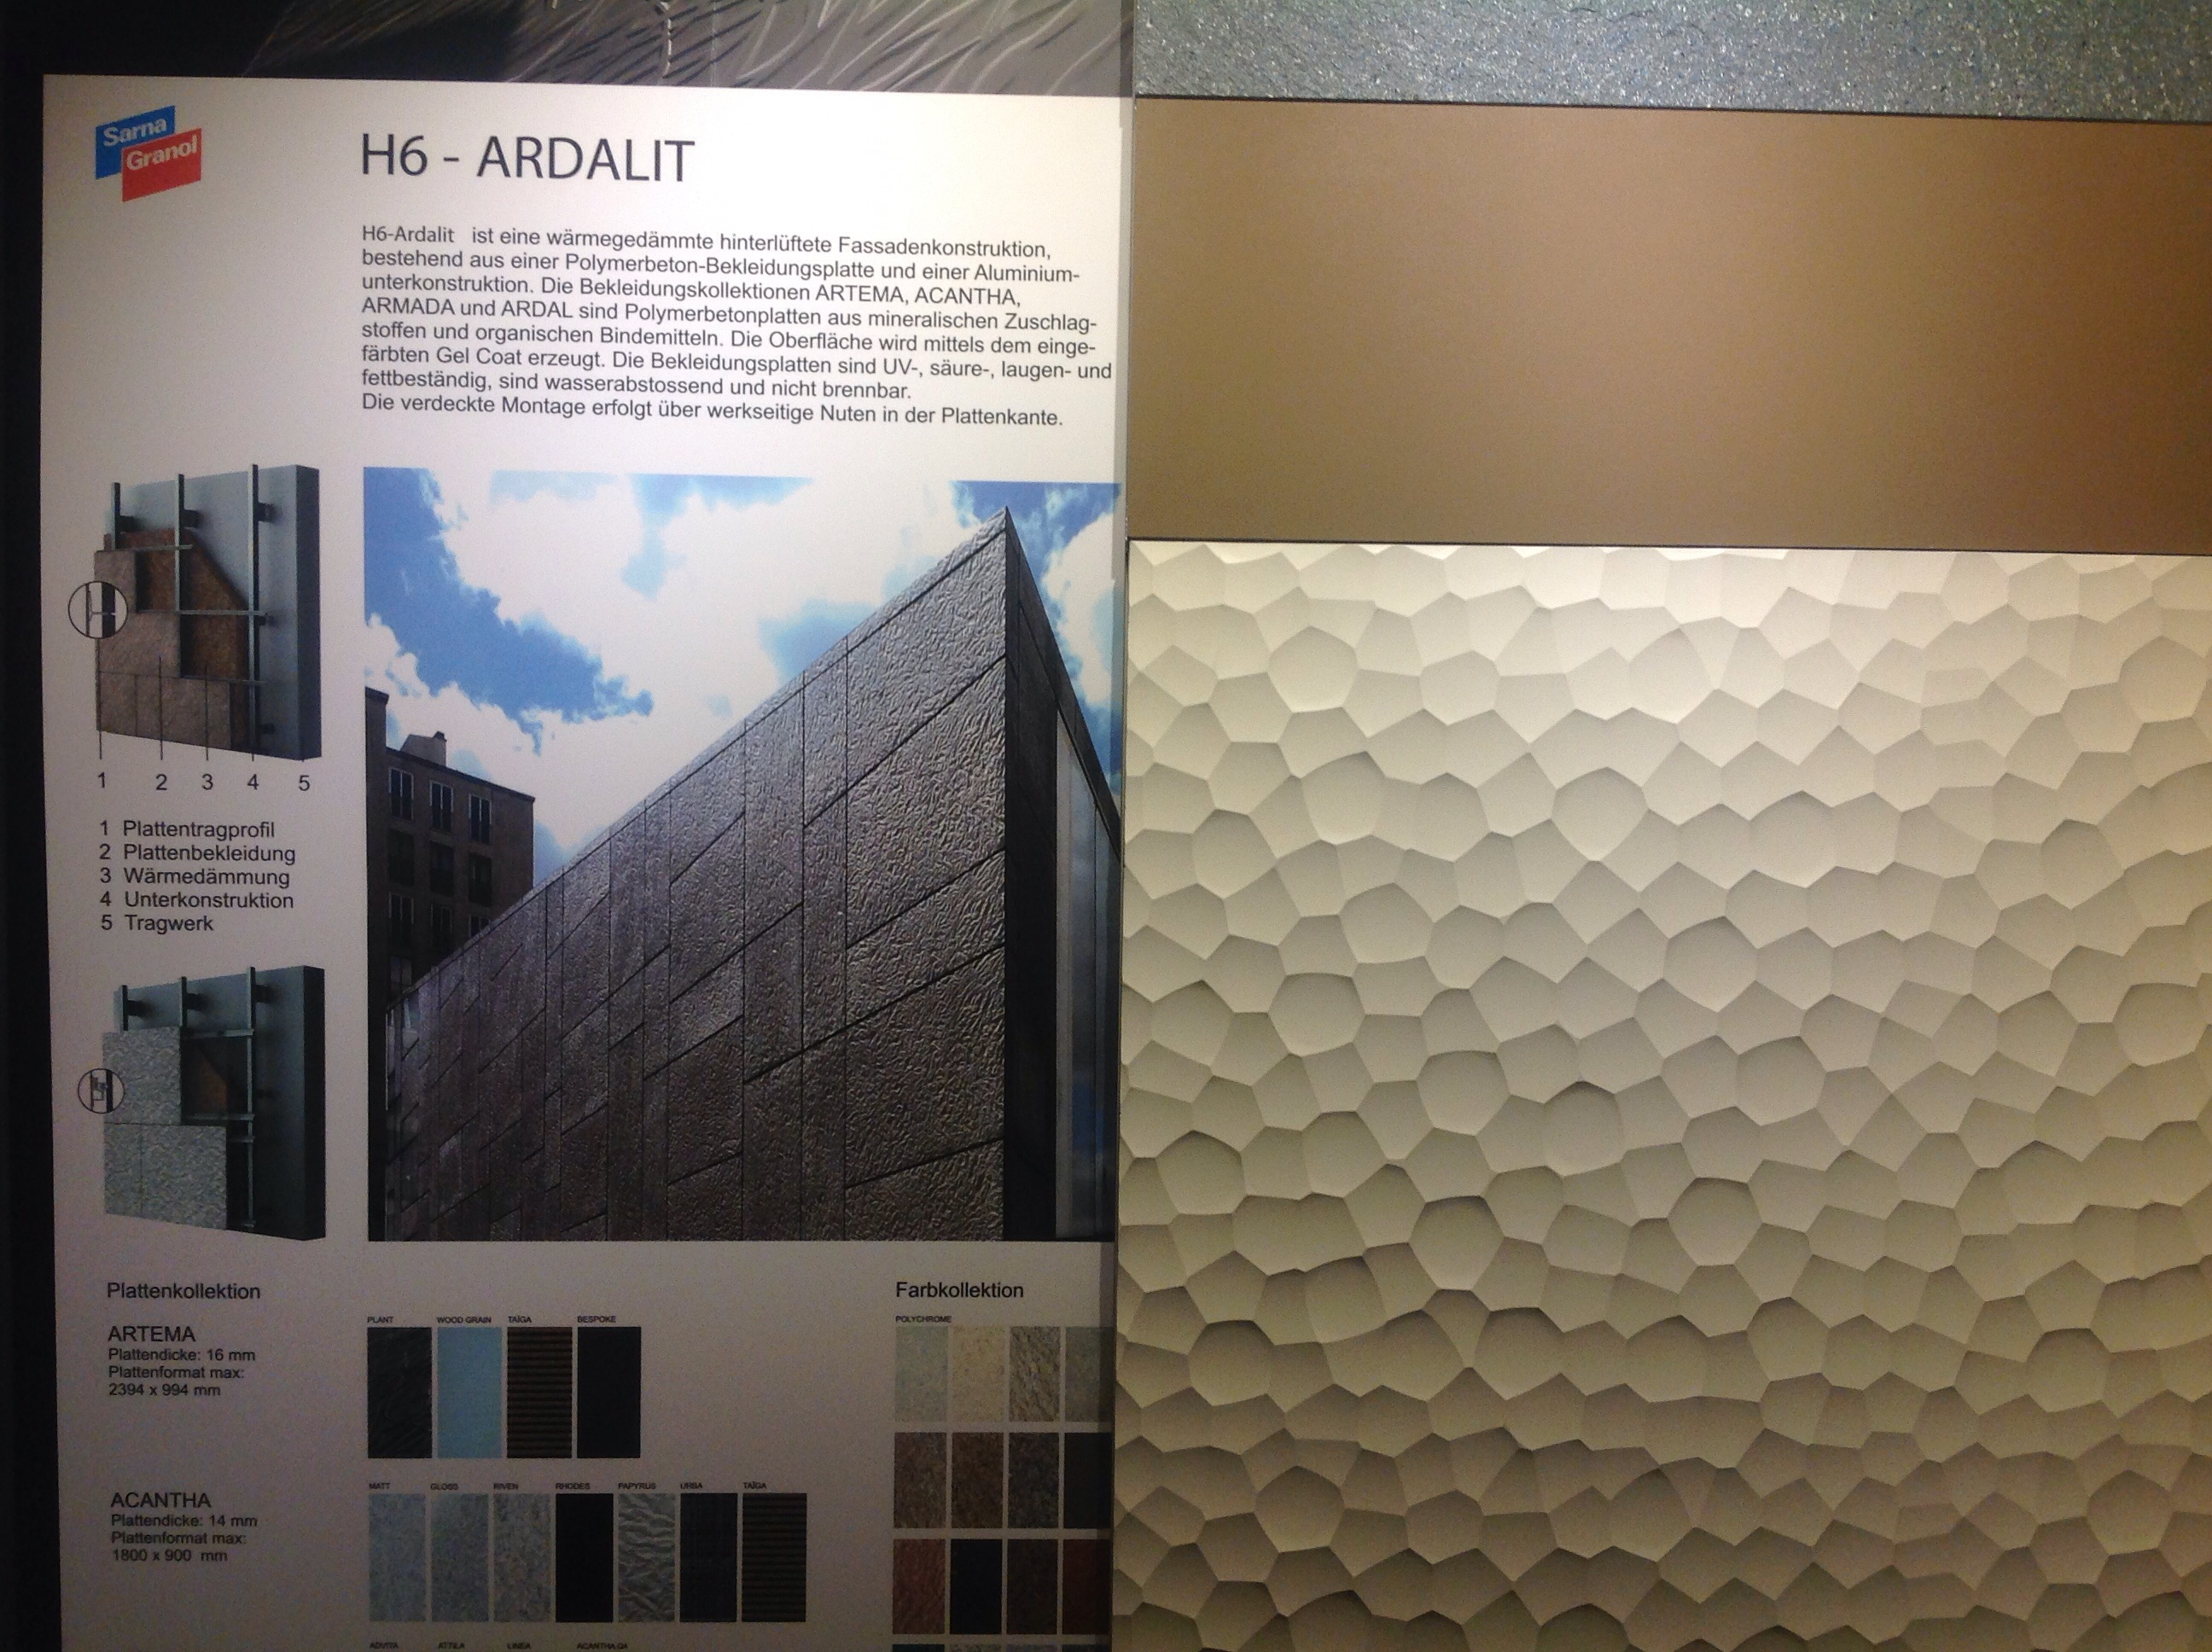 Ardalit surfaces made by Sarna-Granol